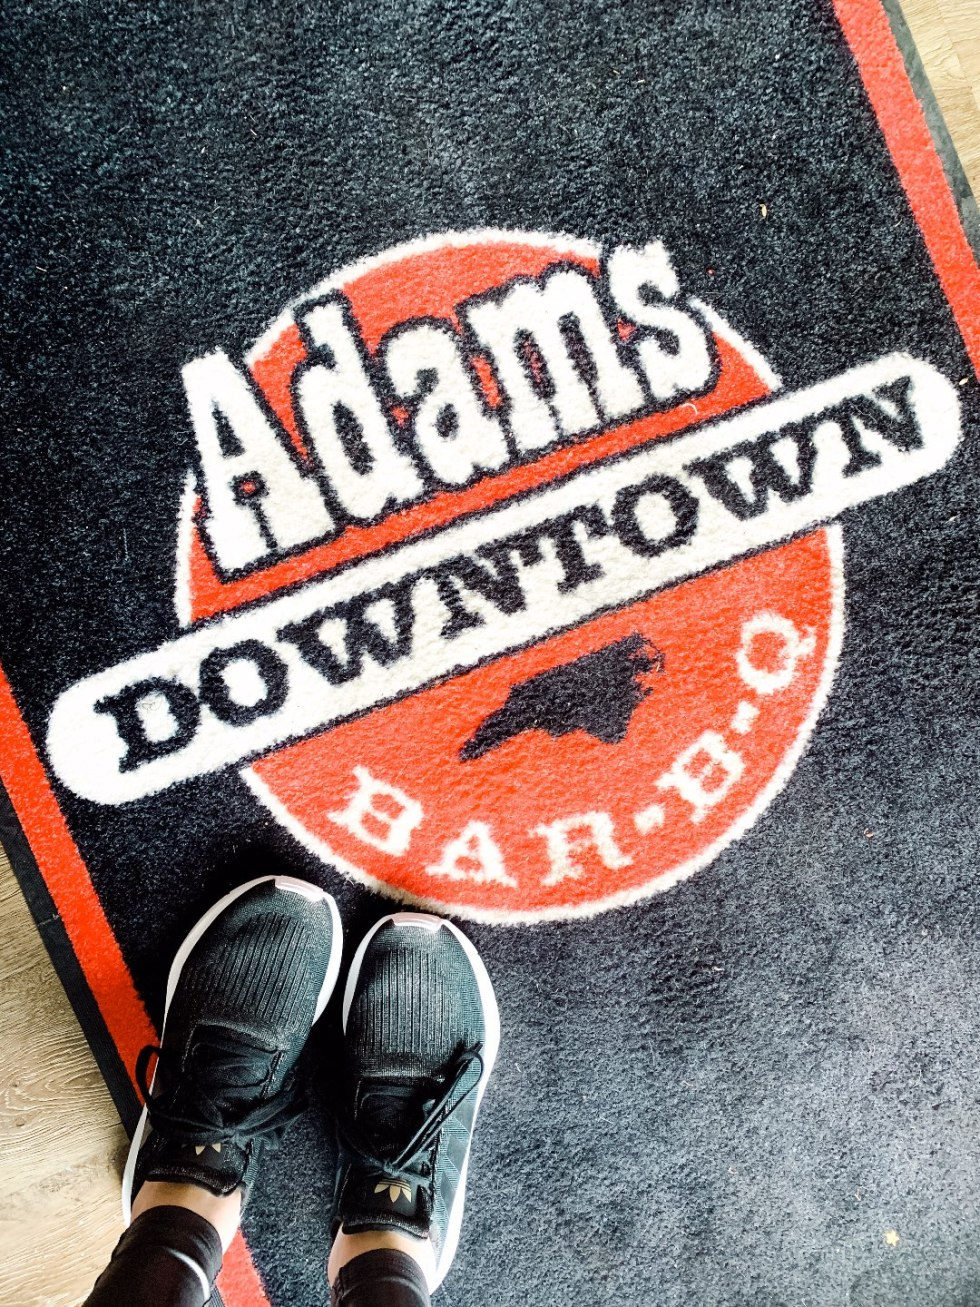 Eastern North Carolina Travel Guide: Top 10 Things to Do in Goldsboro NC by popular North Carolina blog, I'm Fixin' To: image of Adams Downtown Bar-B-Q floor mat.